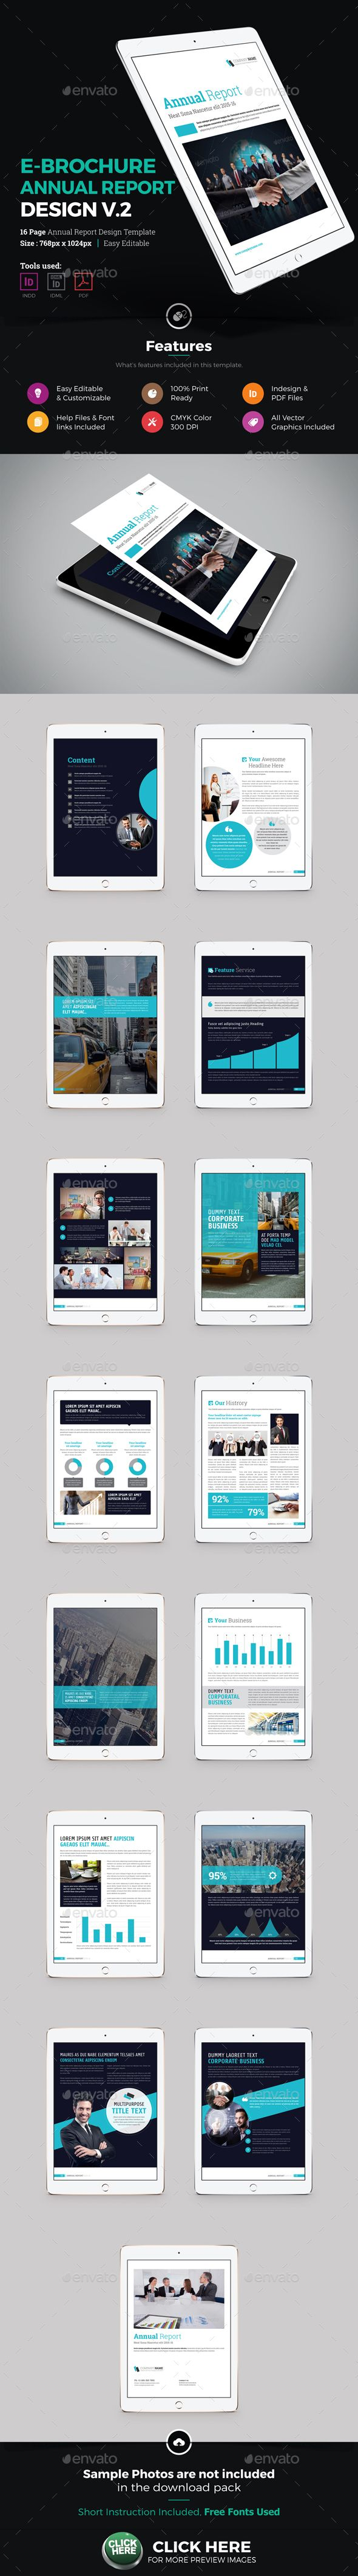 E-Brochure Annual Report Design Template InDesign INDD | e ...